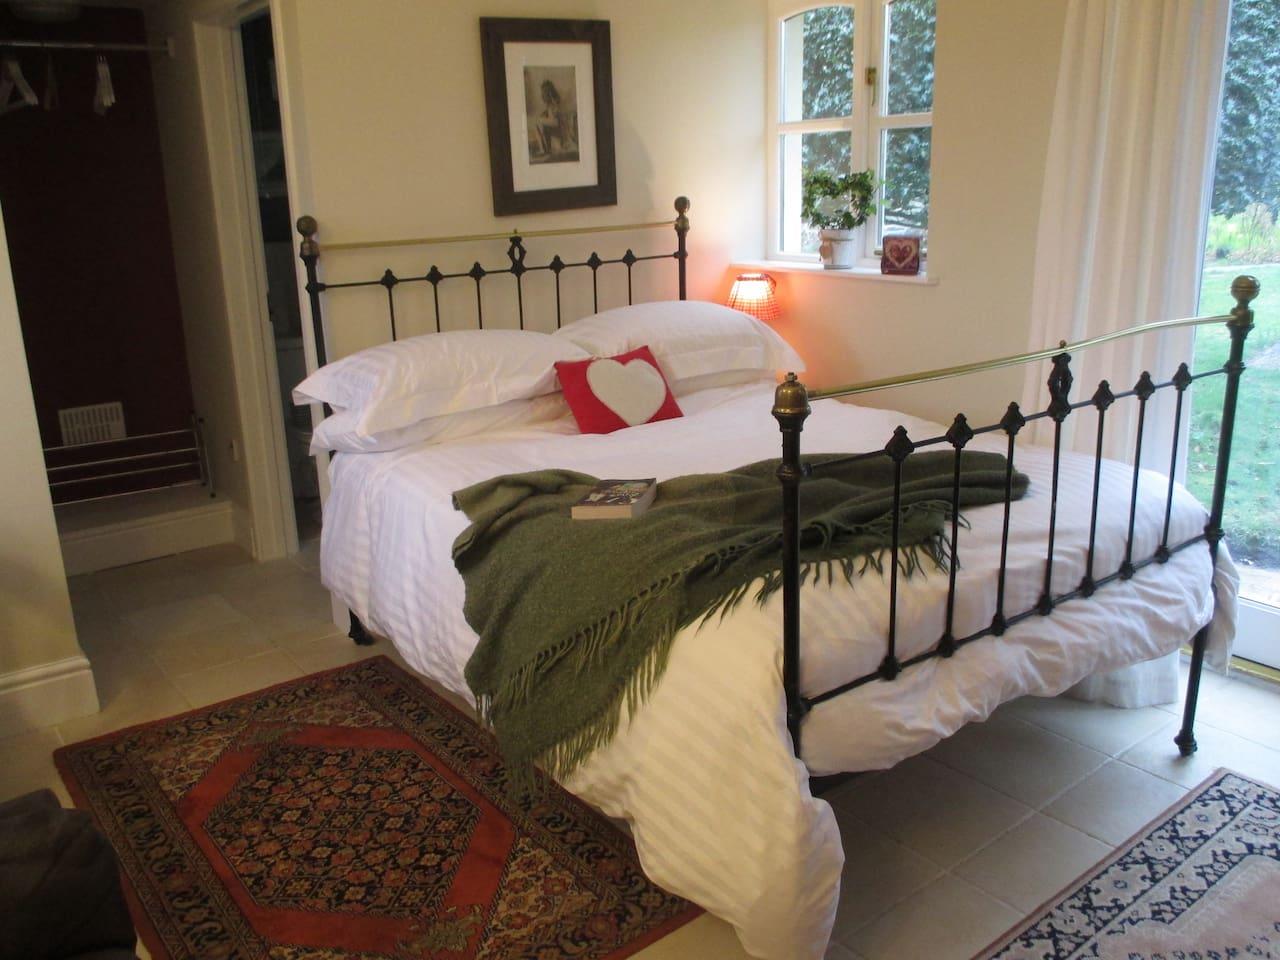 Bed and Breakfast in style at The Cwtch!